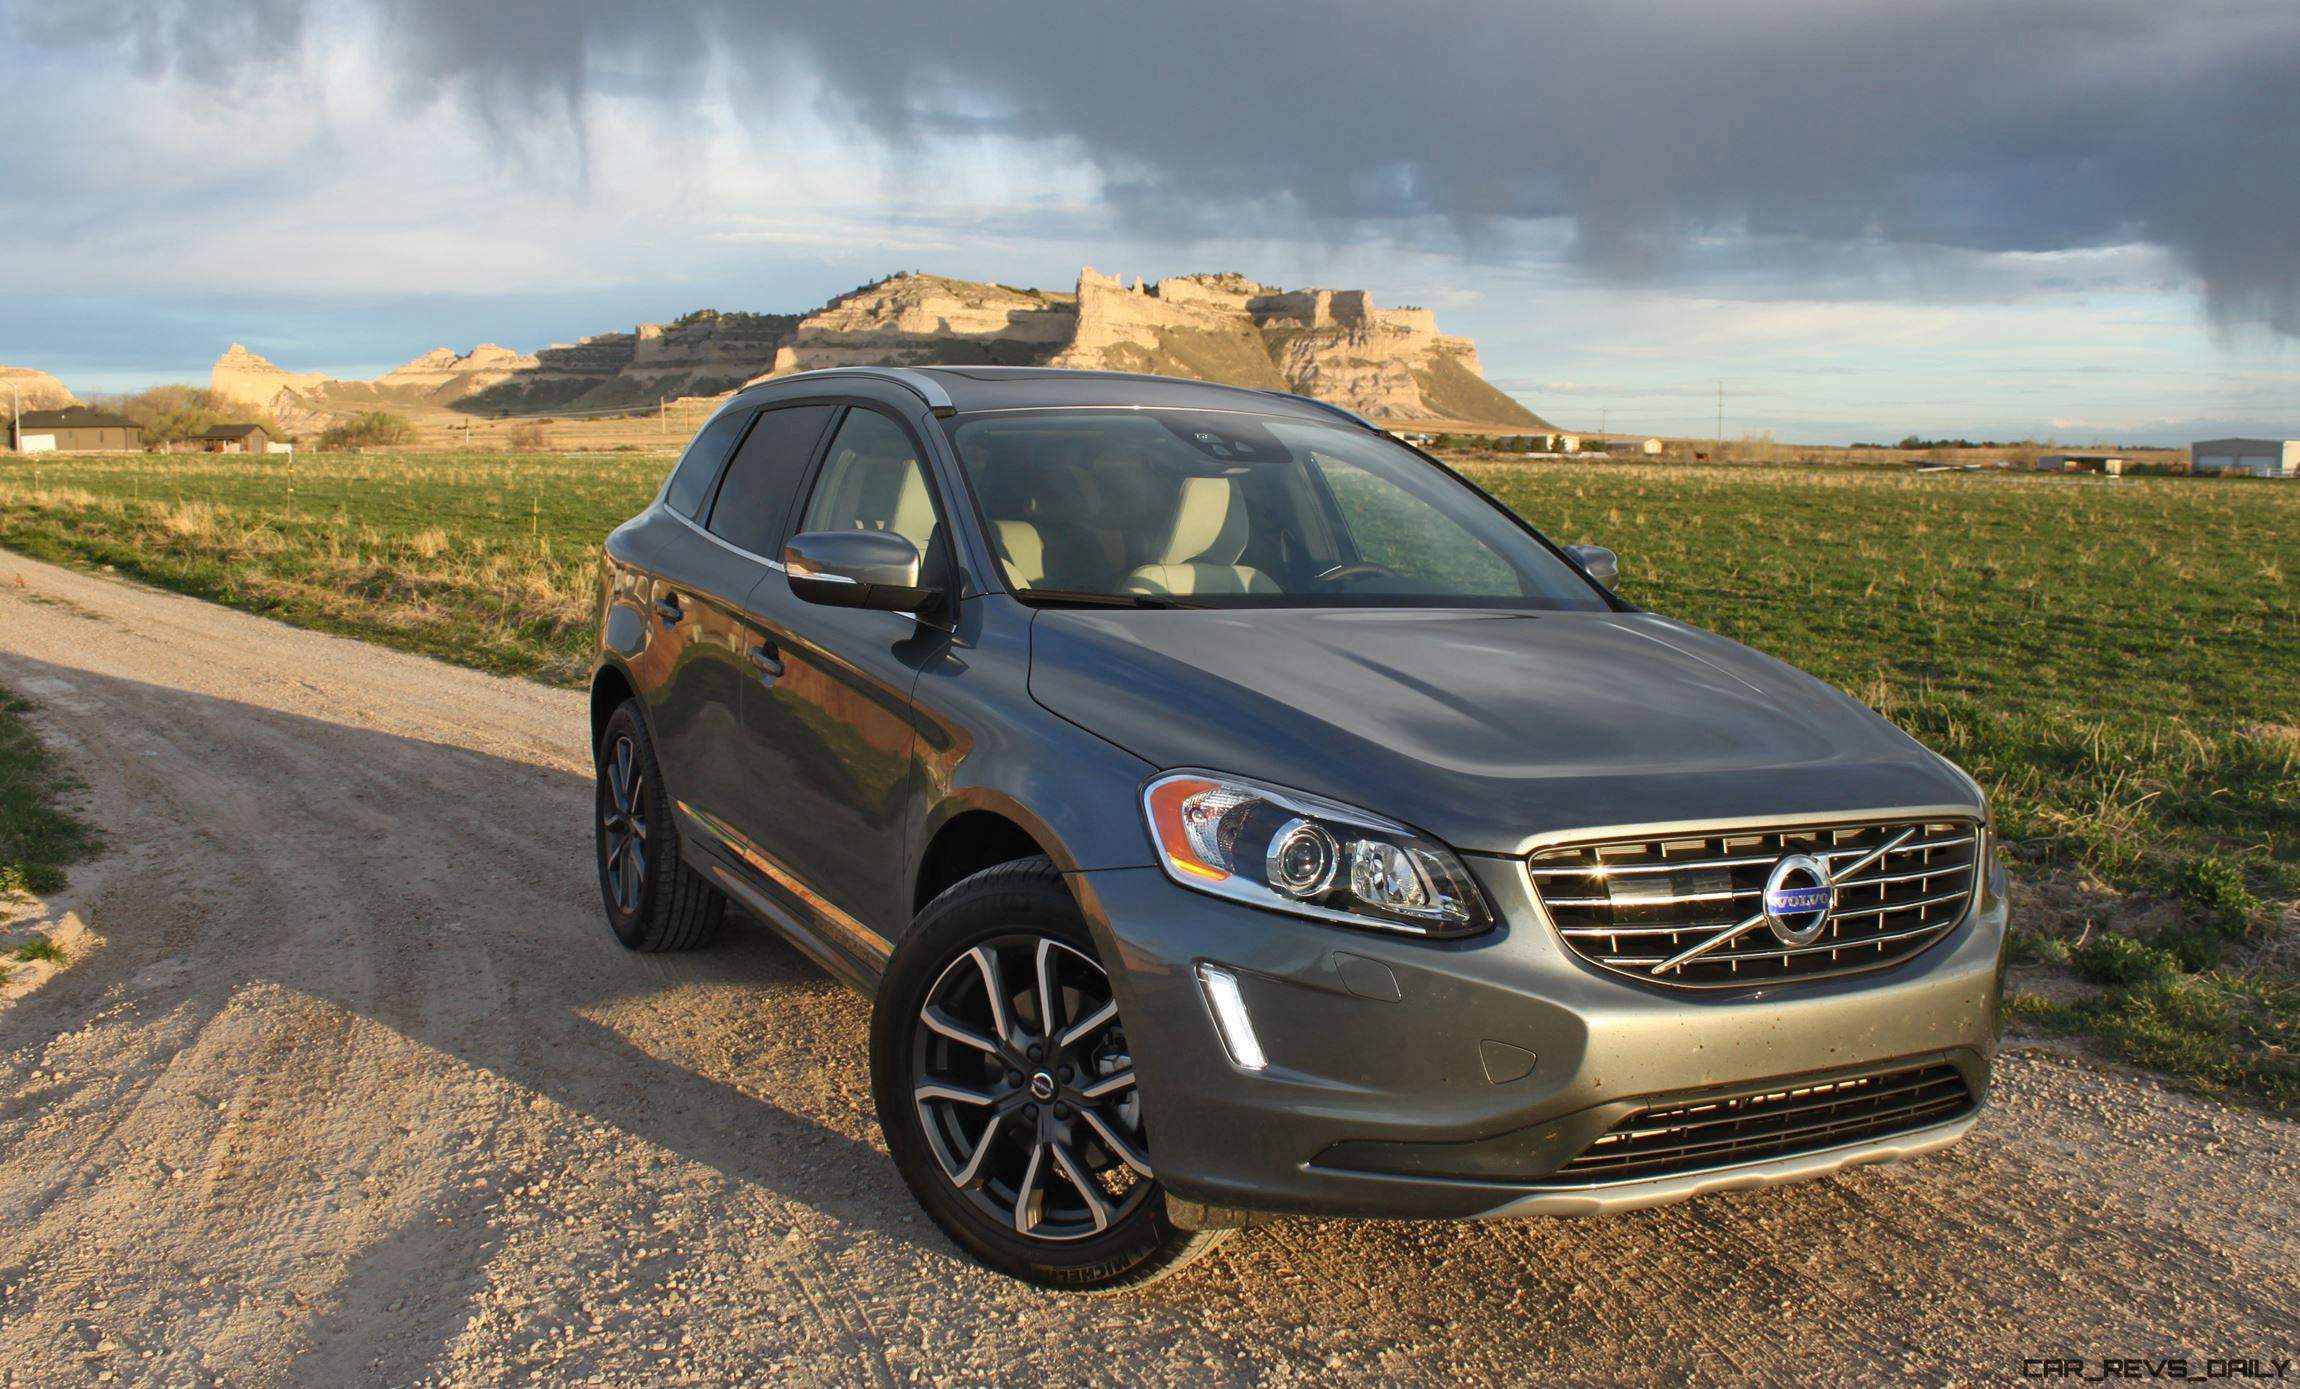 road test review 2016 volvo xc60 t6 awd by tim esterdahl. Black Bedroom Furniture Sets. Home Design Ideas